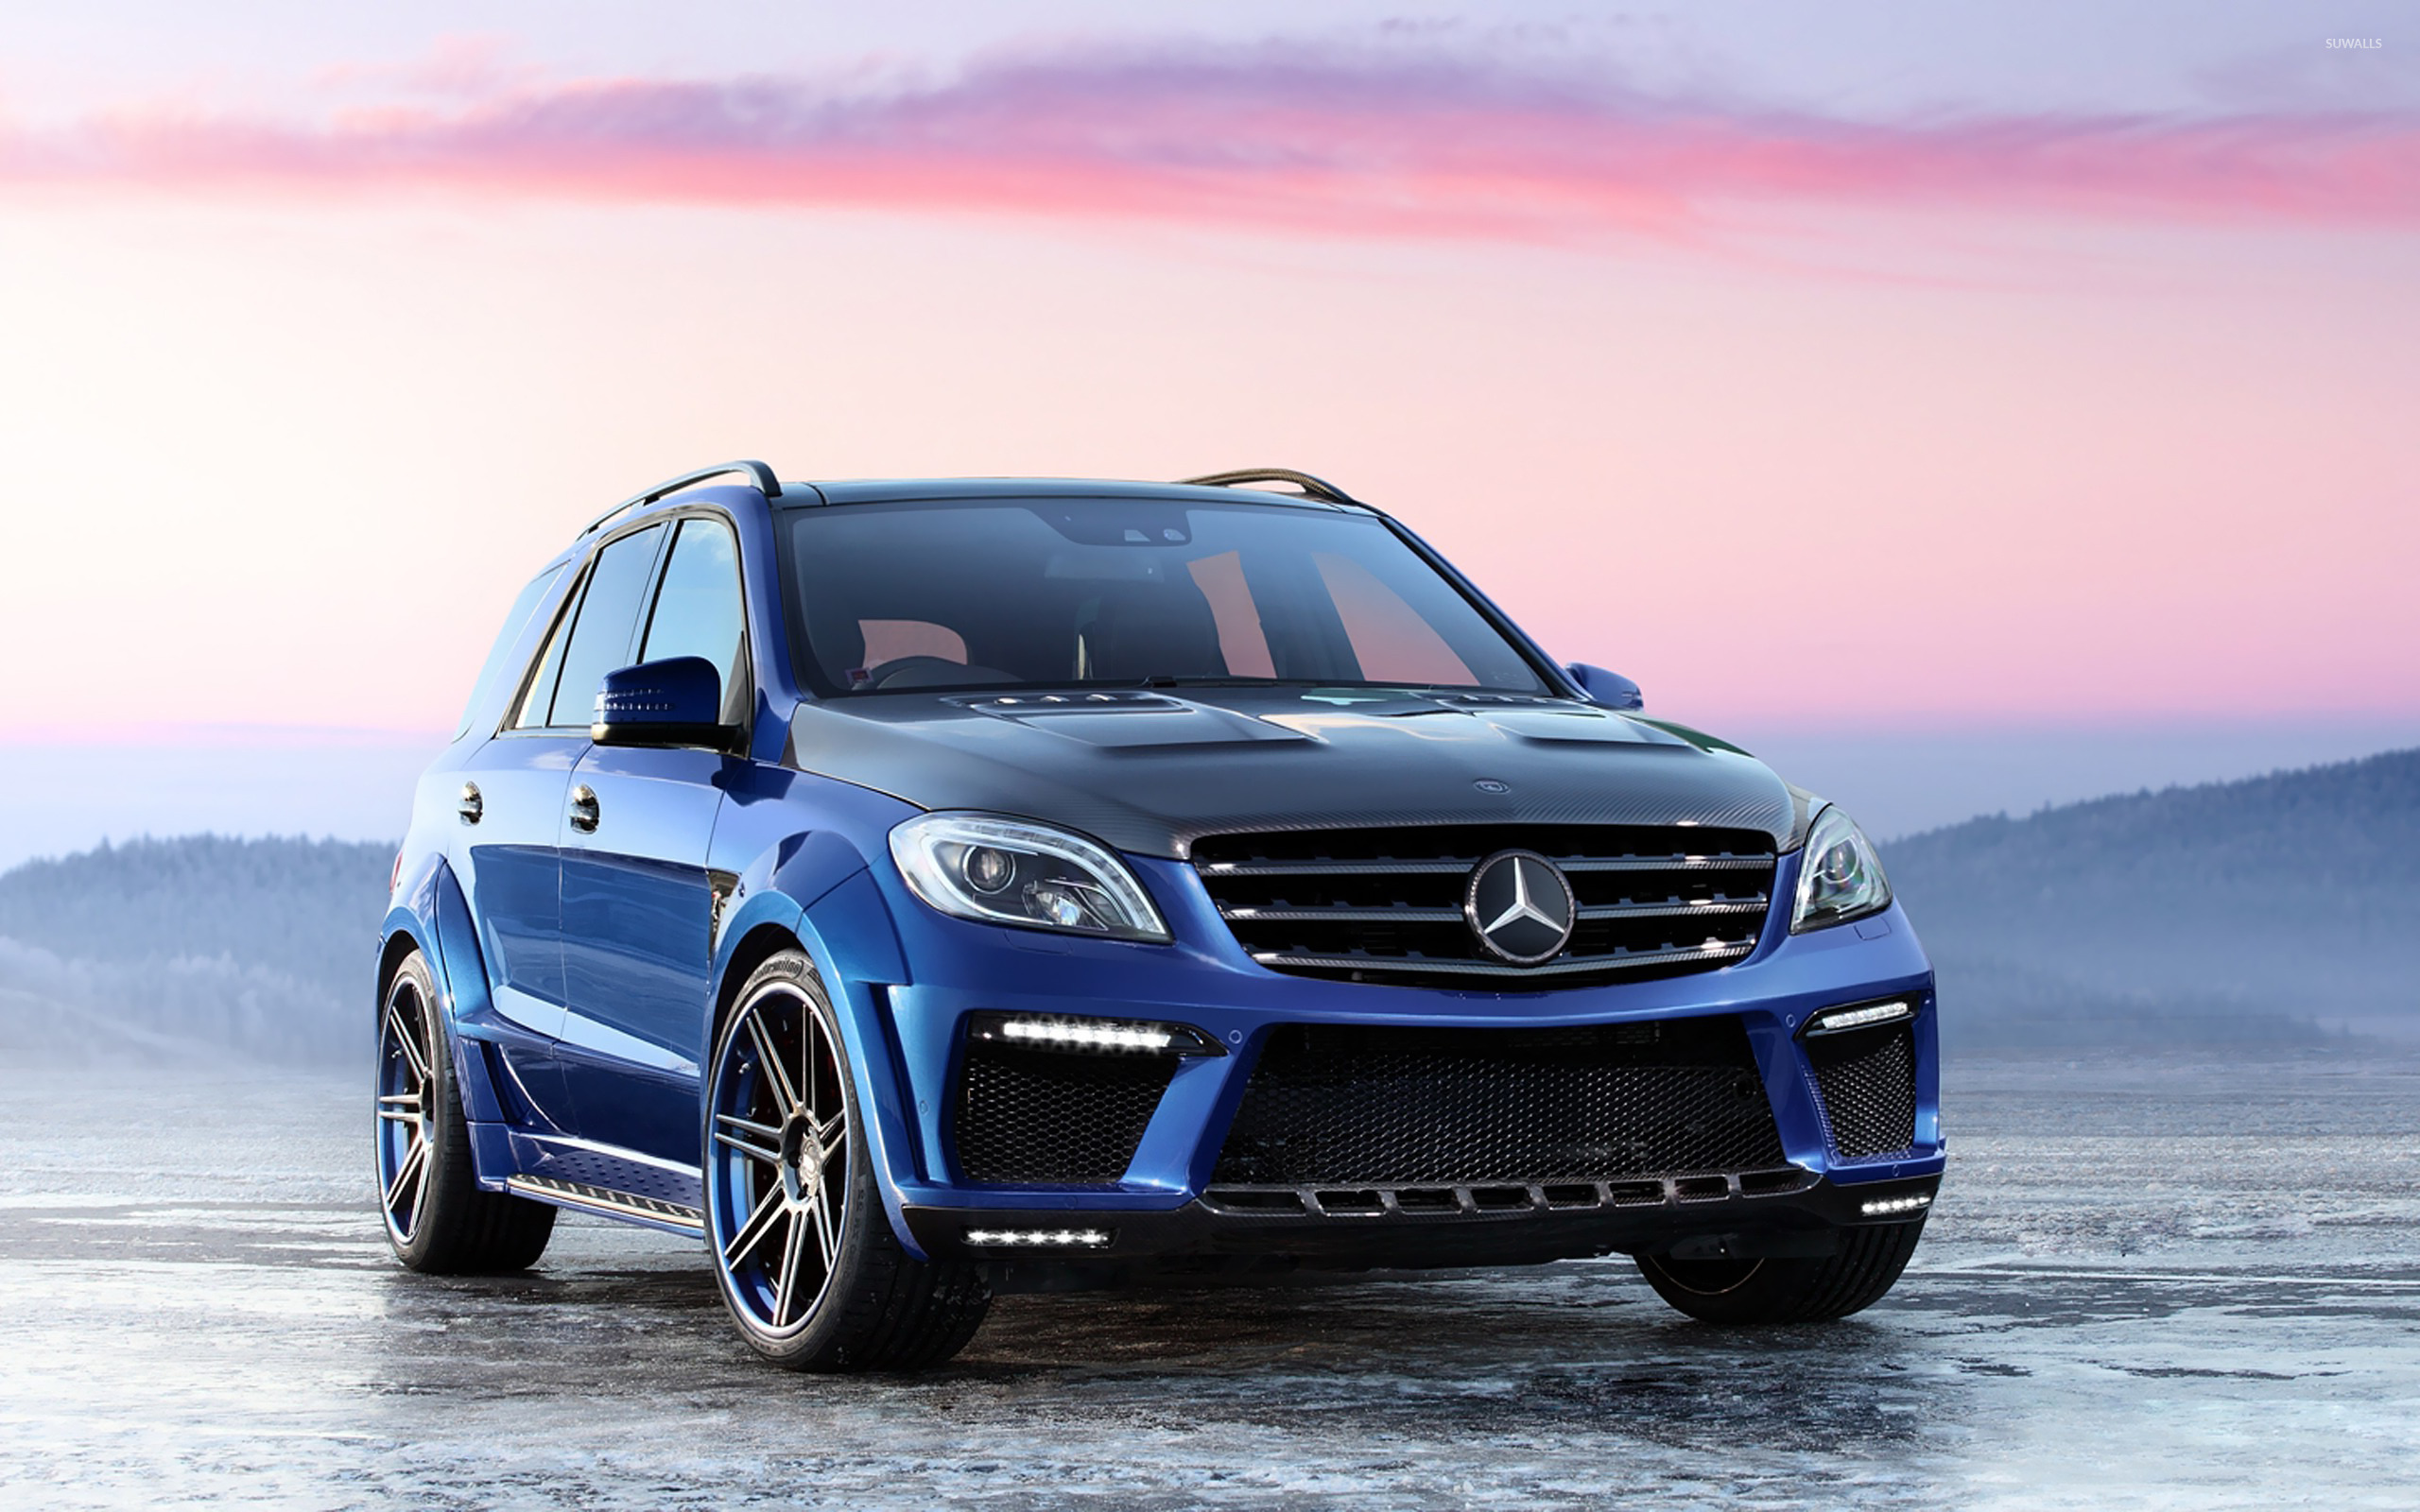 Mercedes benz m class ml 63 amg wallpaper car wallpapers for Ml mercedes benz